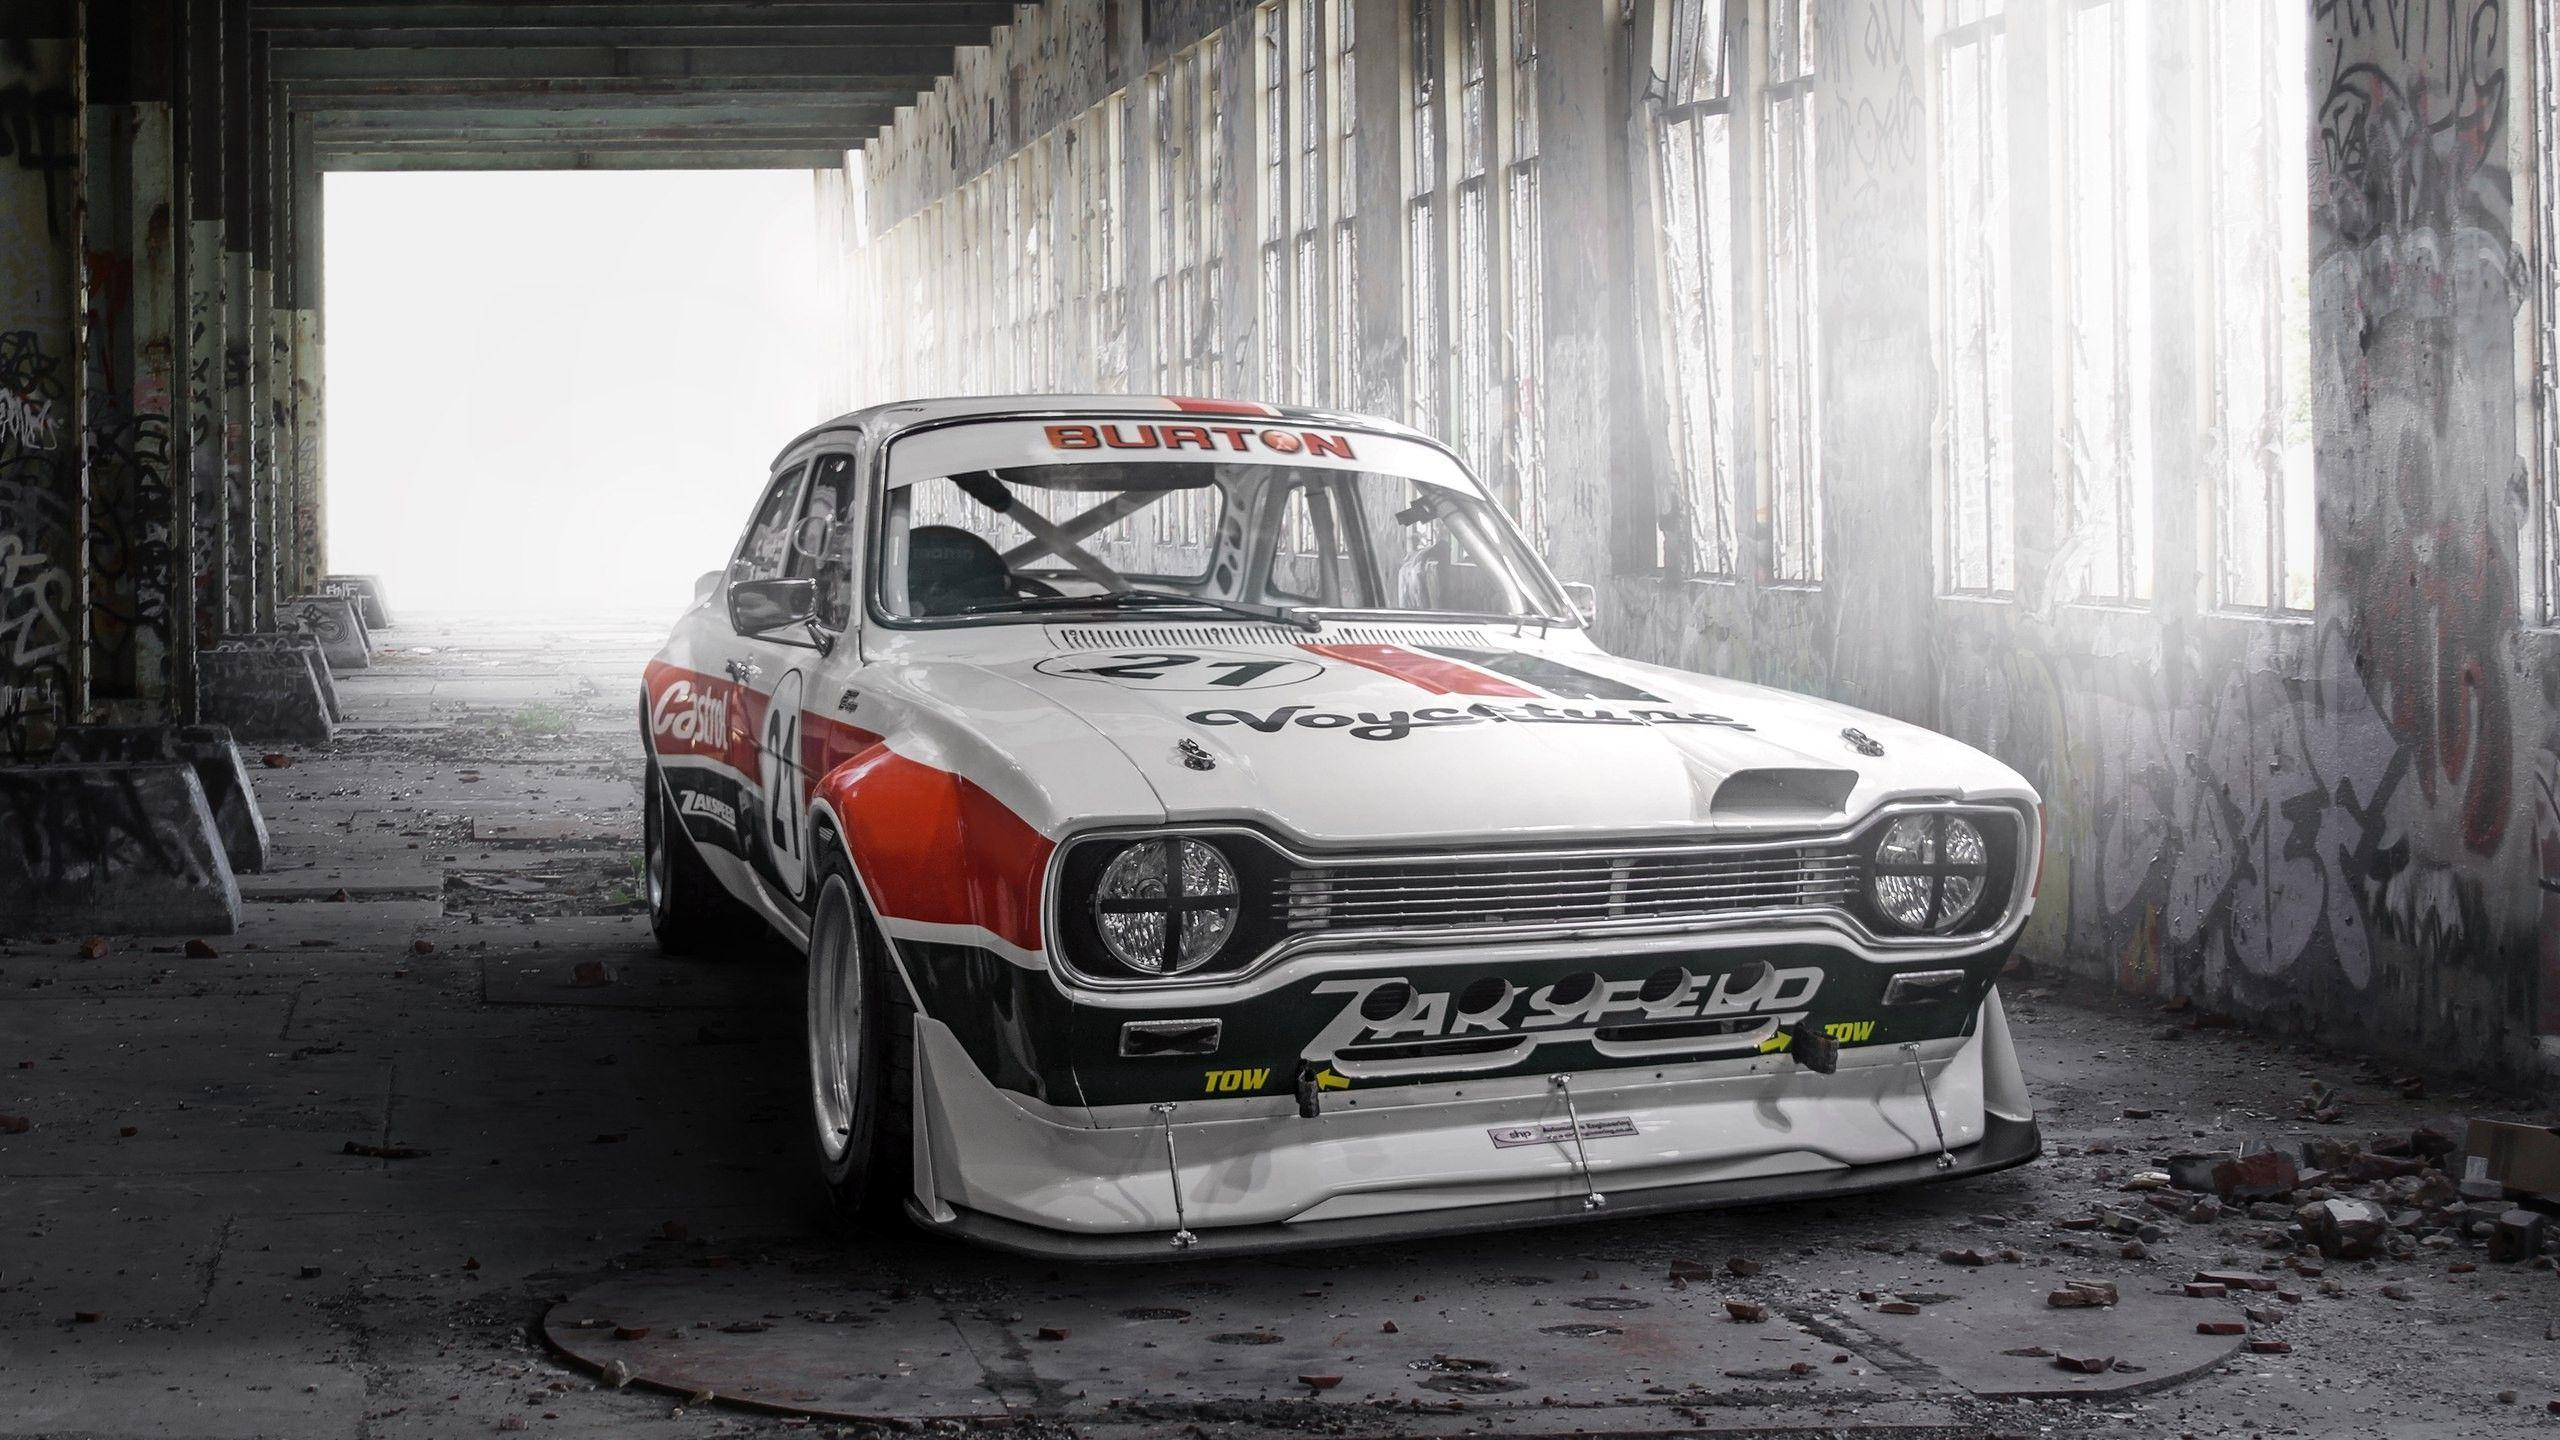 car, Wheels, Sports car, Ford Escort Mk1 Wallpapers HD / Desktop